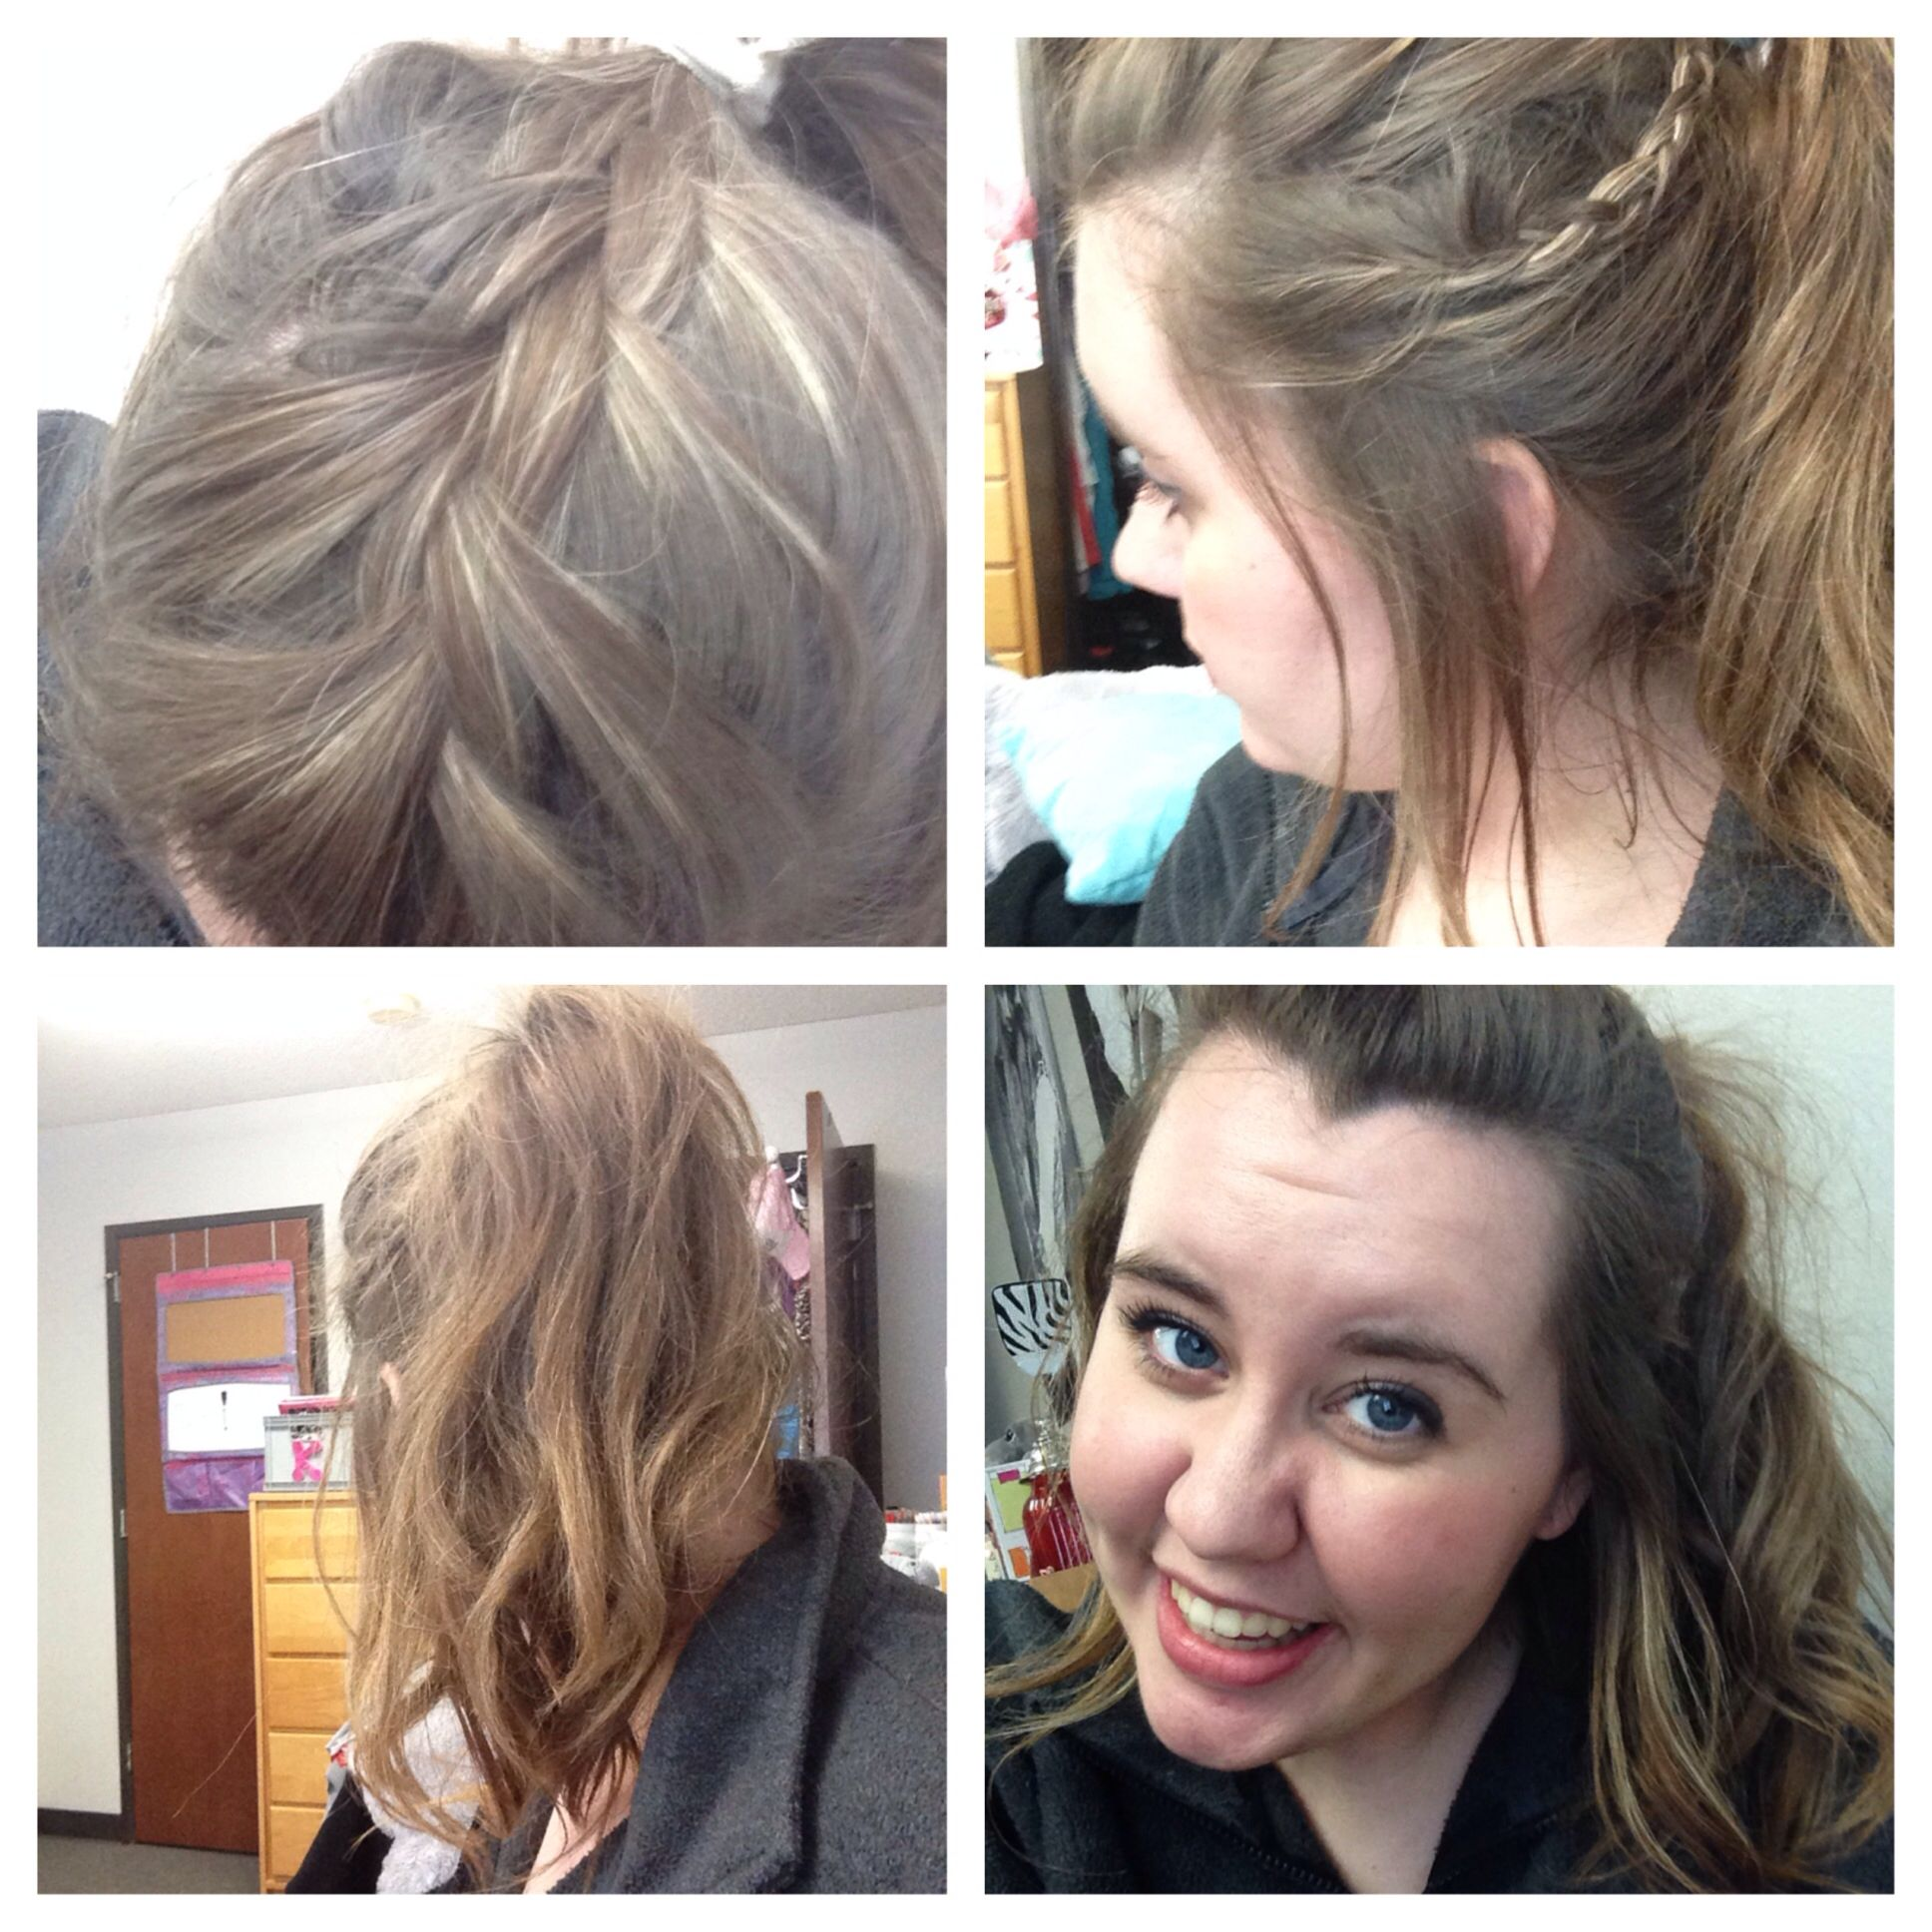 My hair was on point today braid pony tail curls hair